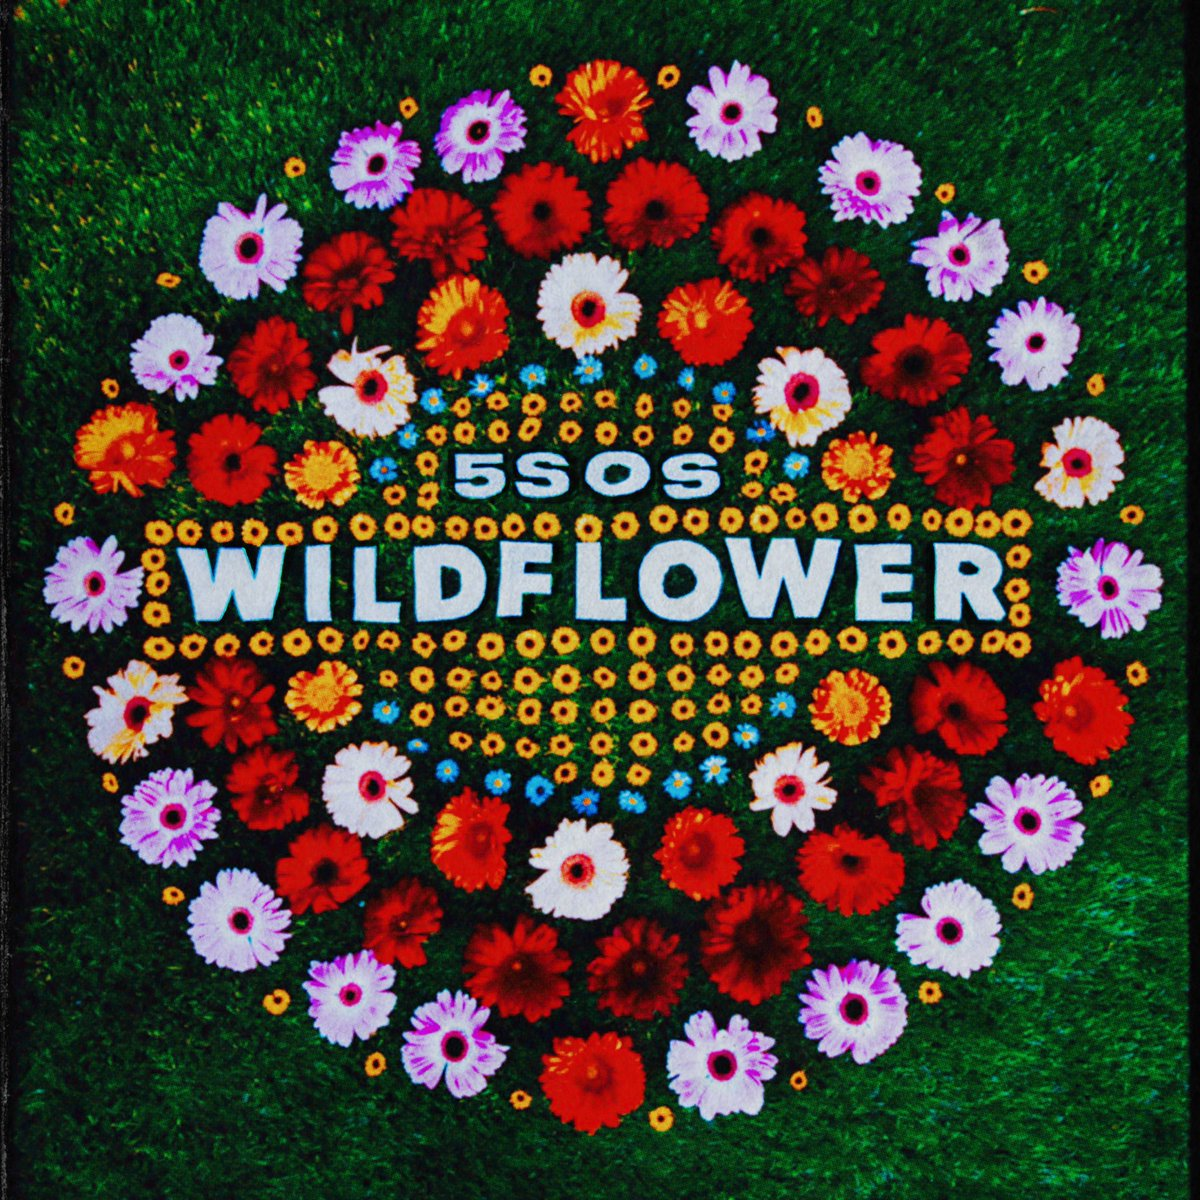 Wildflower // March 25 //